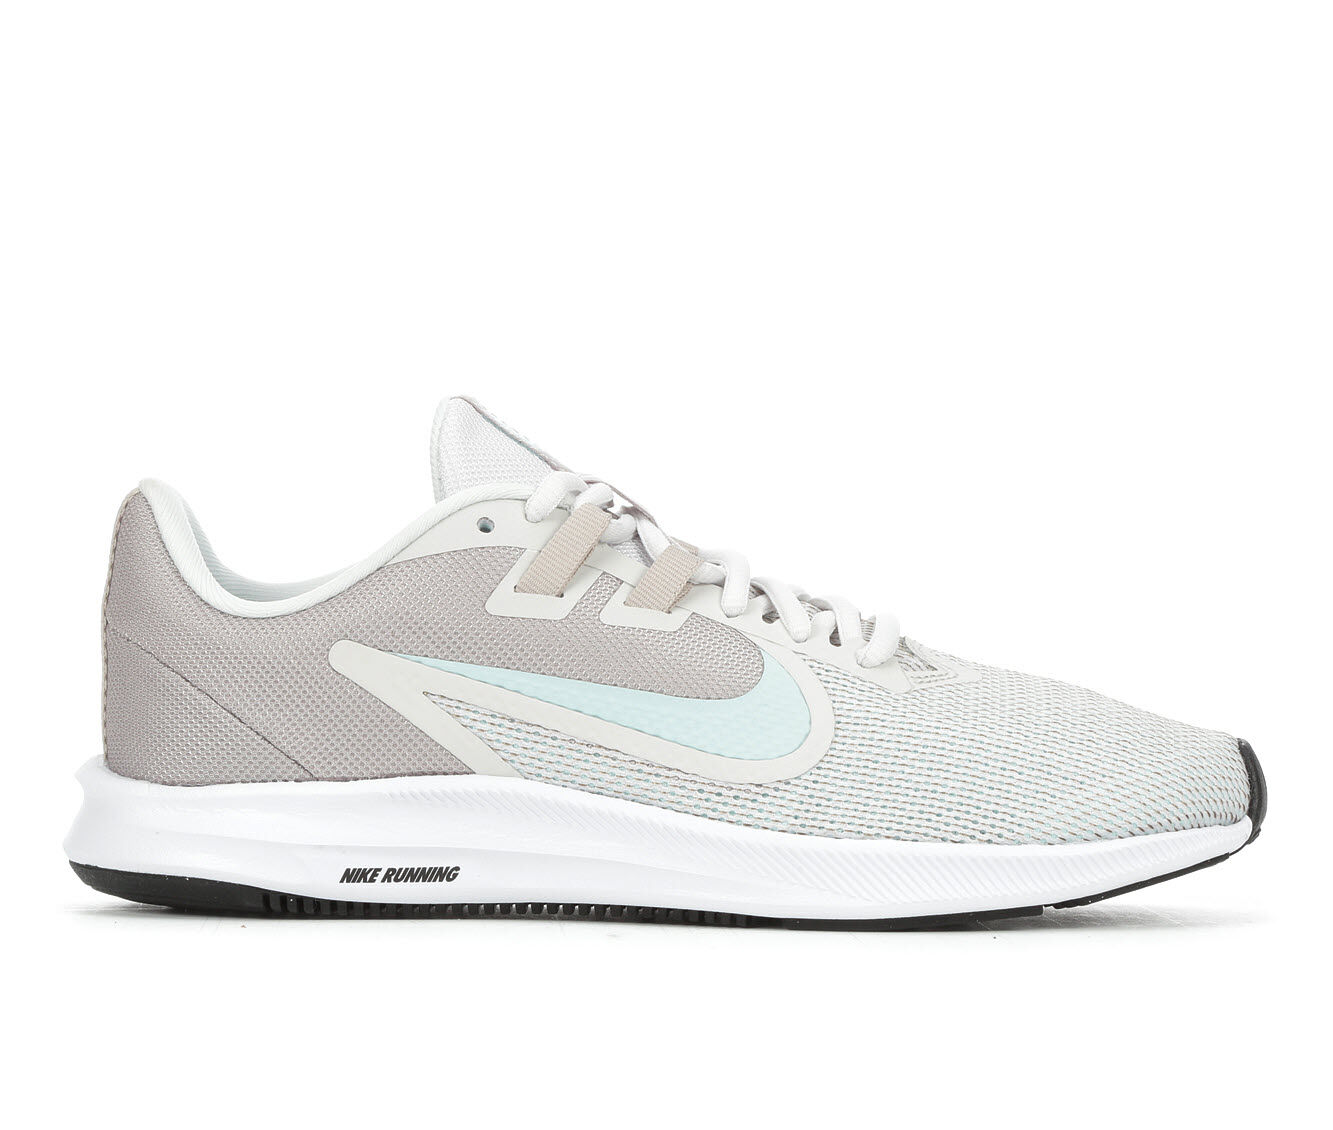 Adorable Women's Nike Downshifter 9 Running Shoes Plat/Wht/Teal